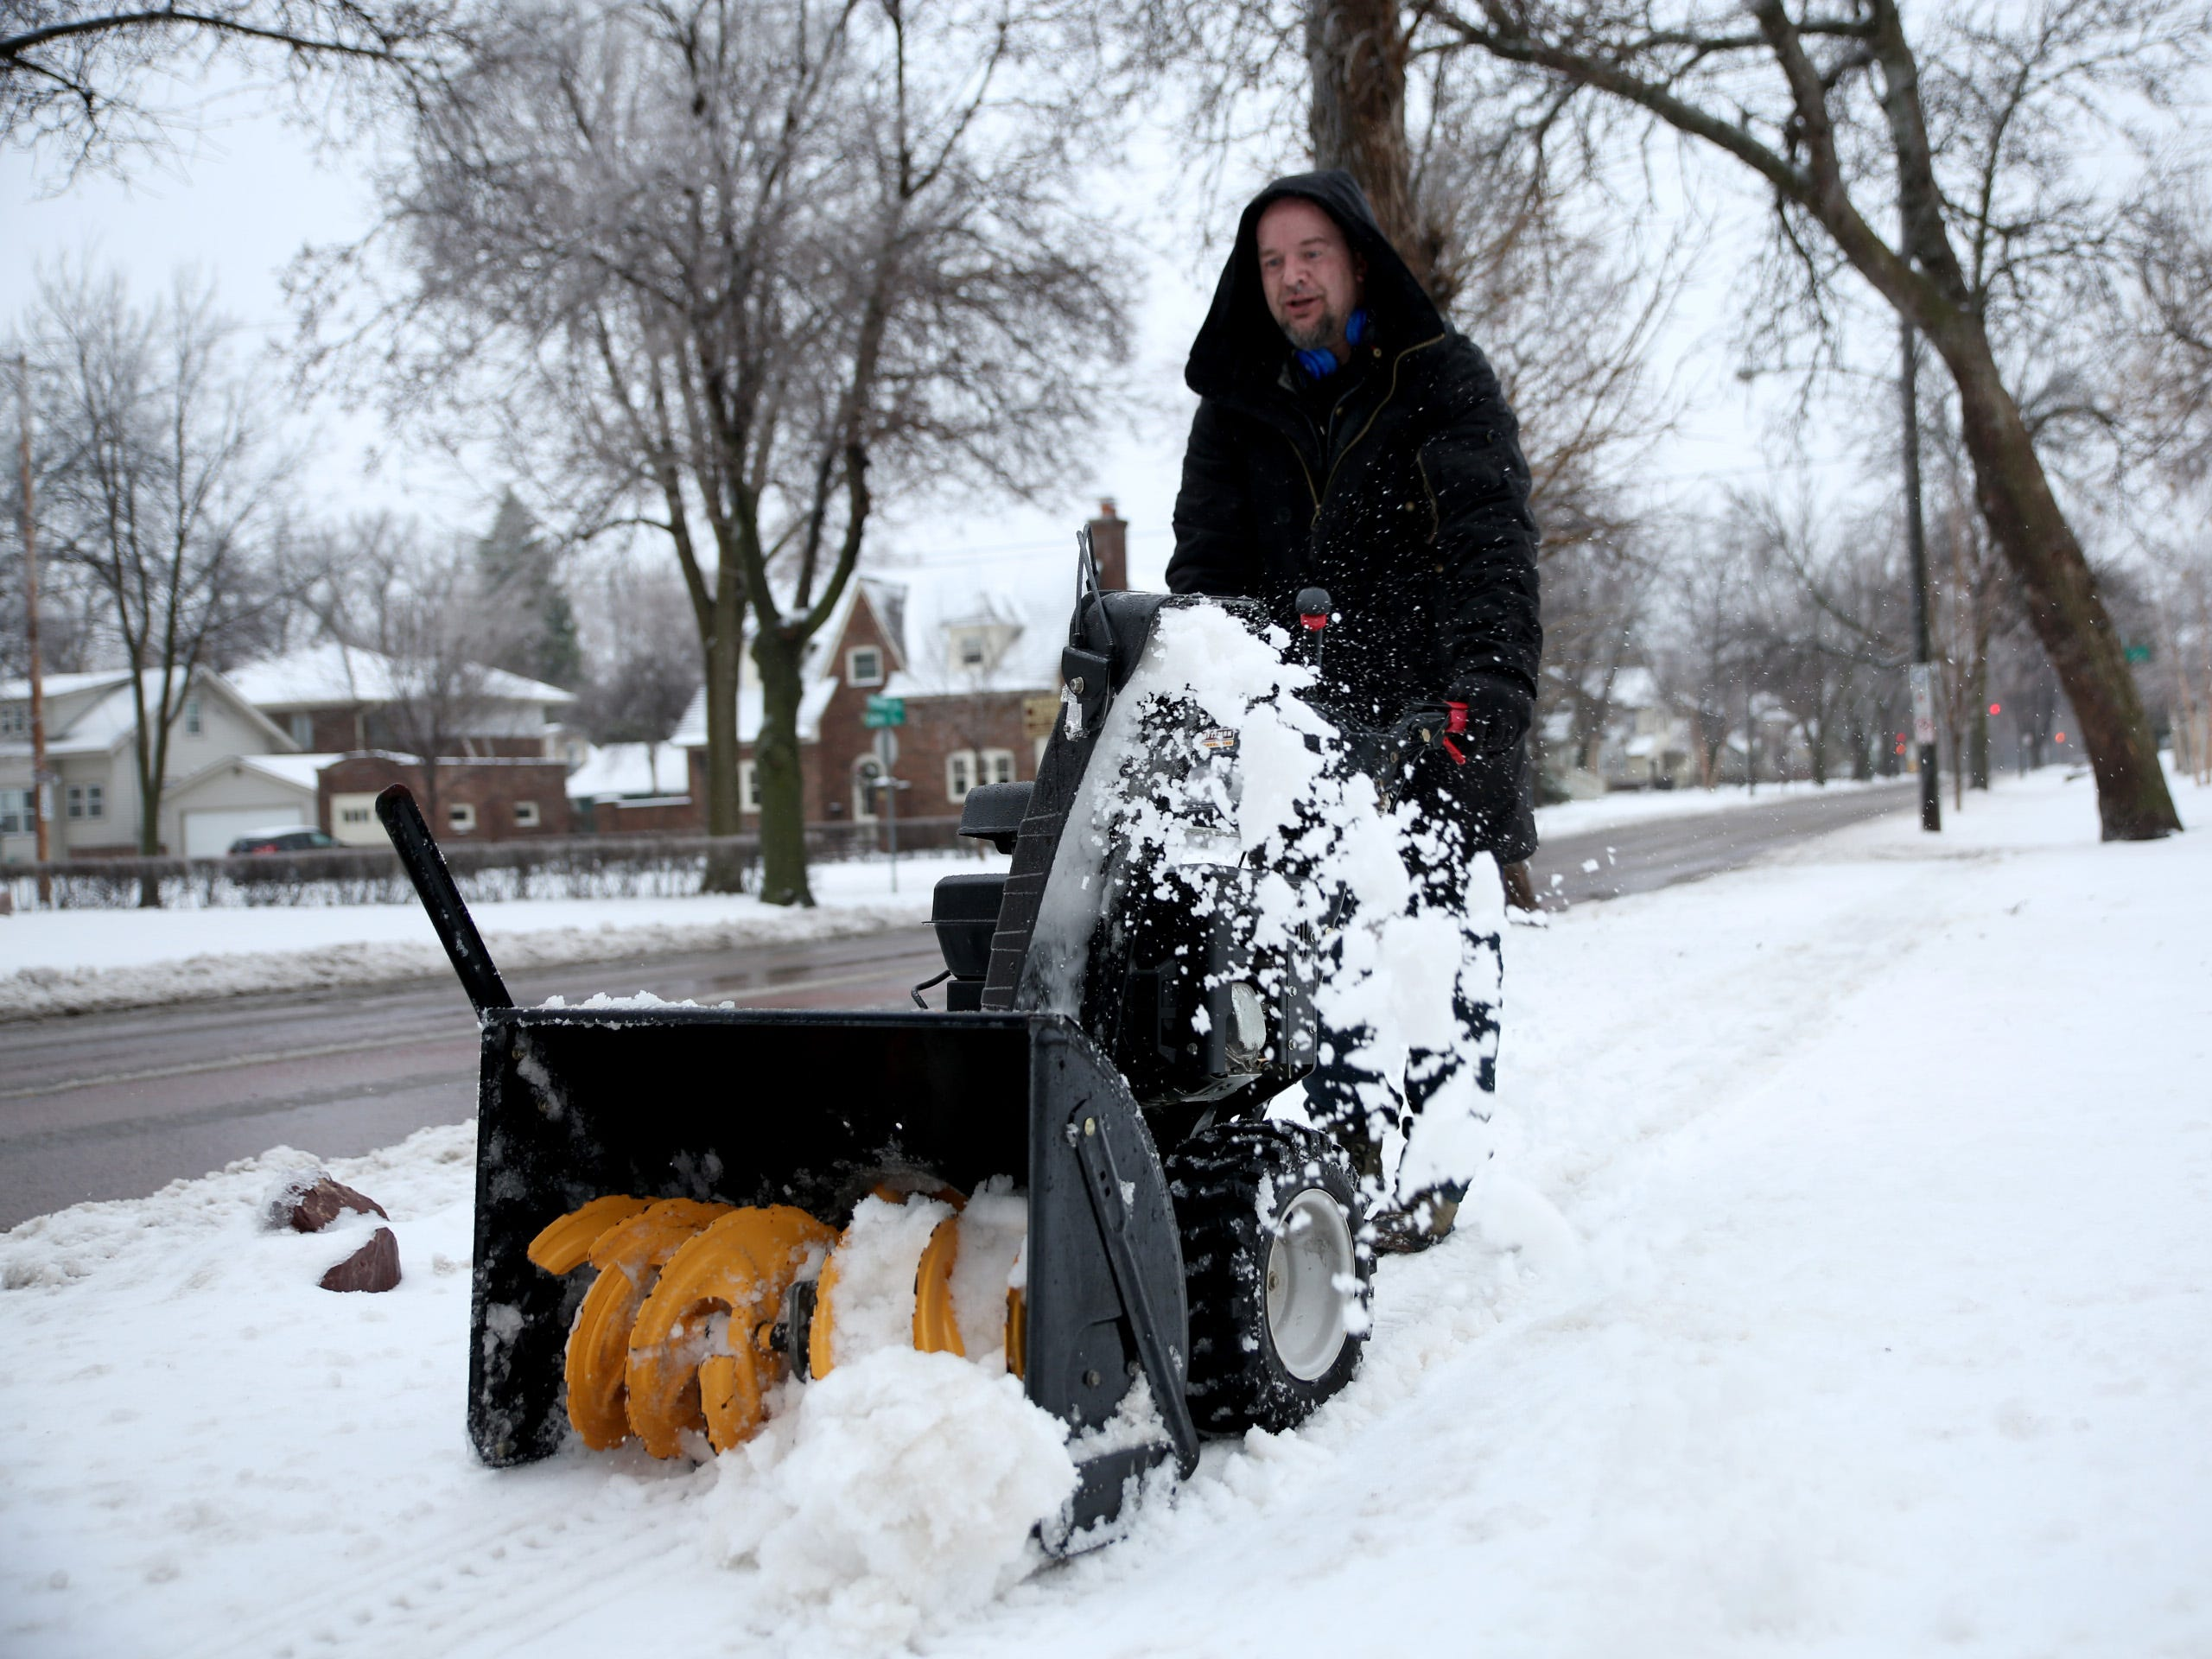 Kyle Stettnichs snow blows his neighborhood block on Thursday, April 11. He said he was clearing his neighbors' snow because the mix of ice, sleet, rain and snow was too heavy for them to shovel.